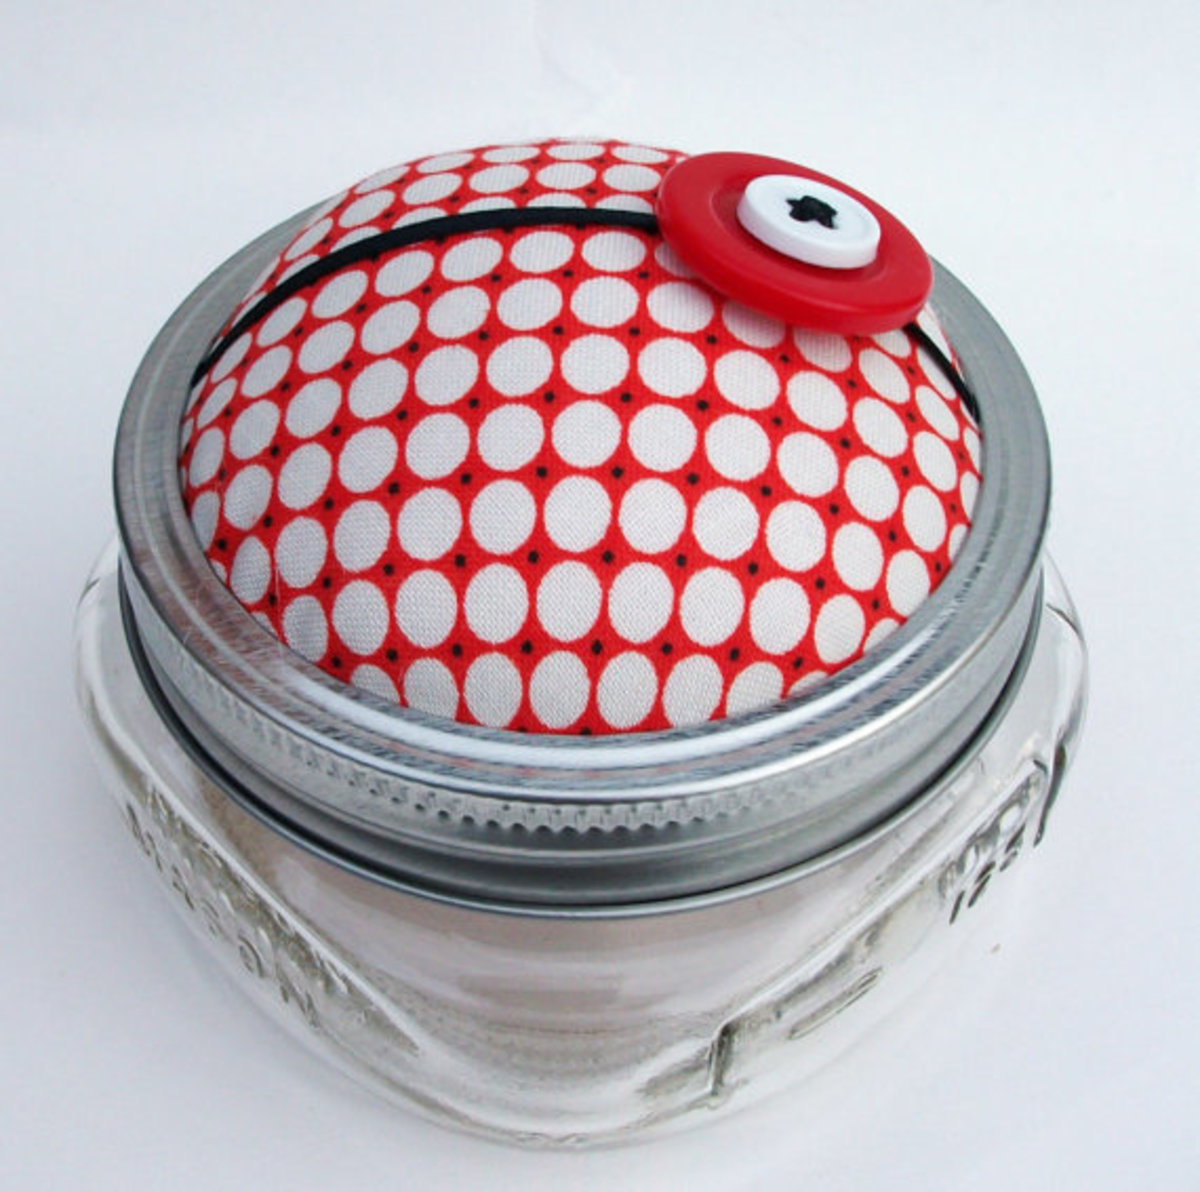 pincushion storage jar